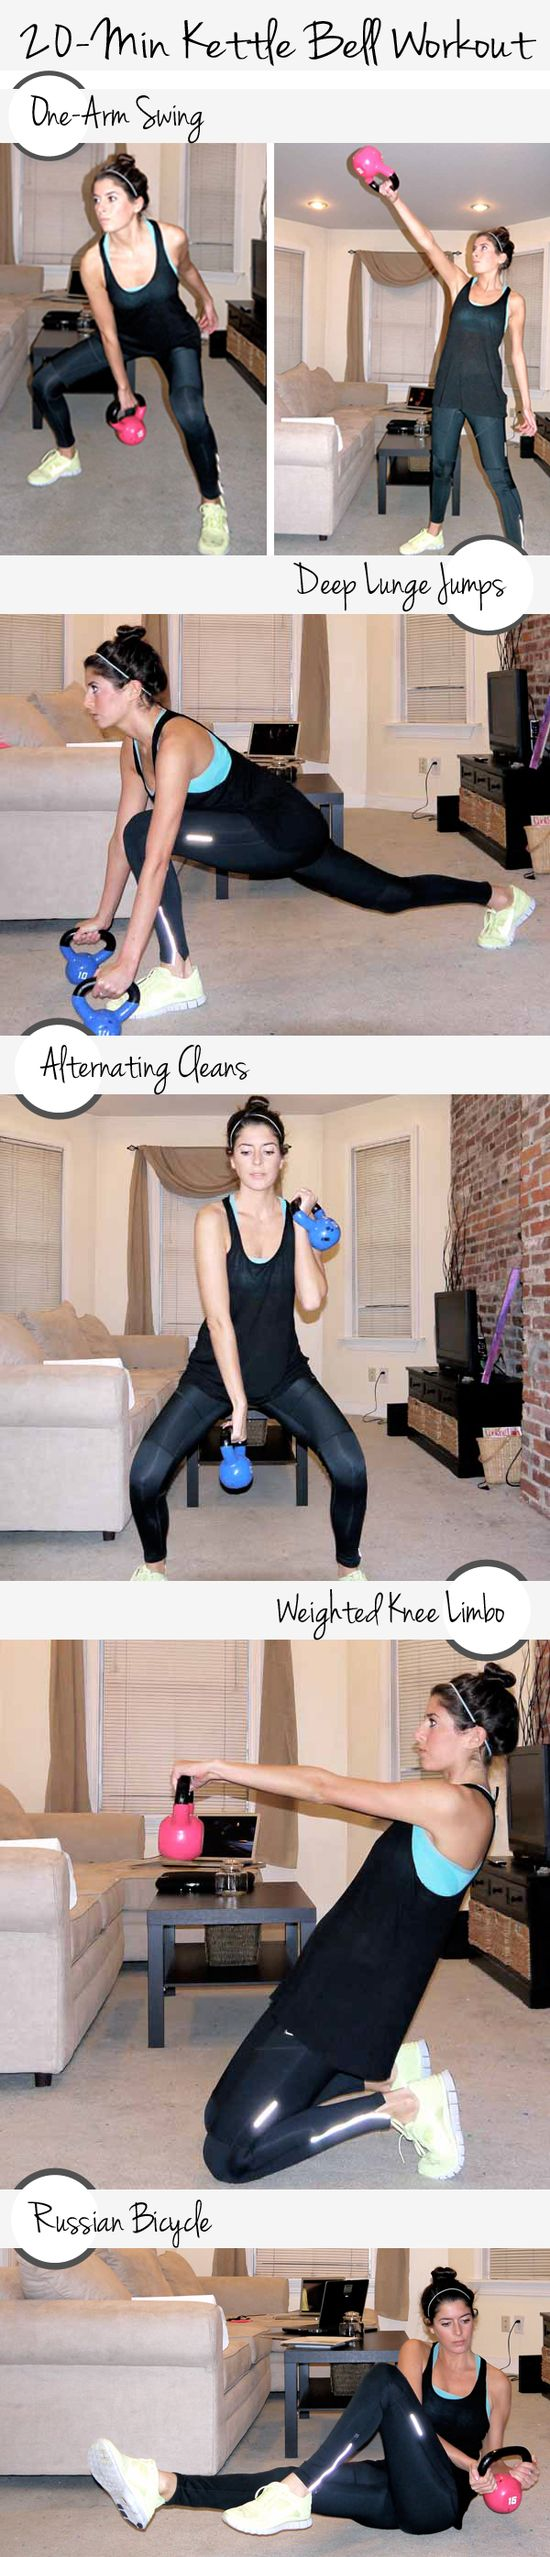 20-Minute Kettle Bell Workout